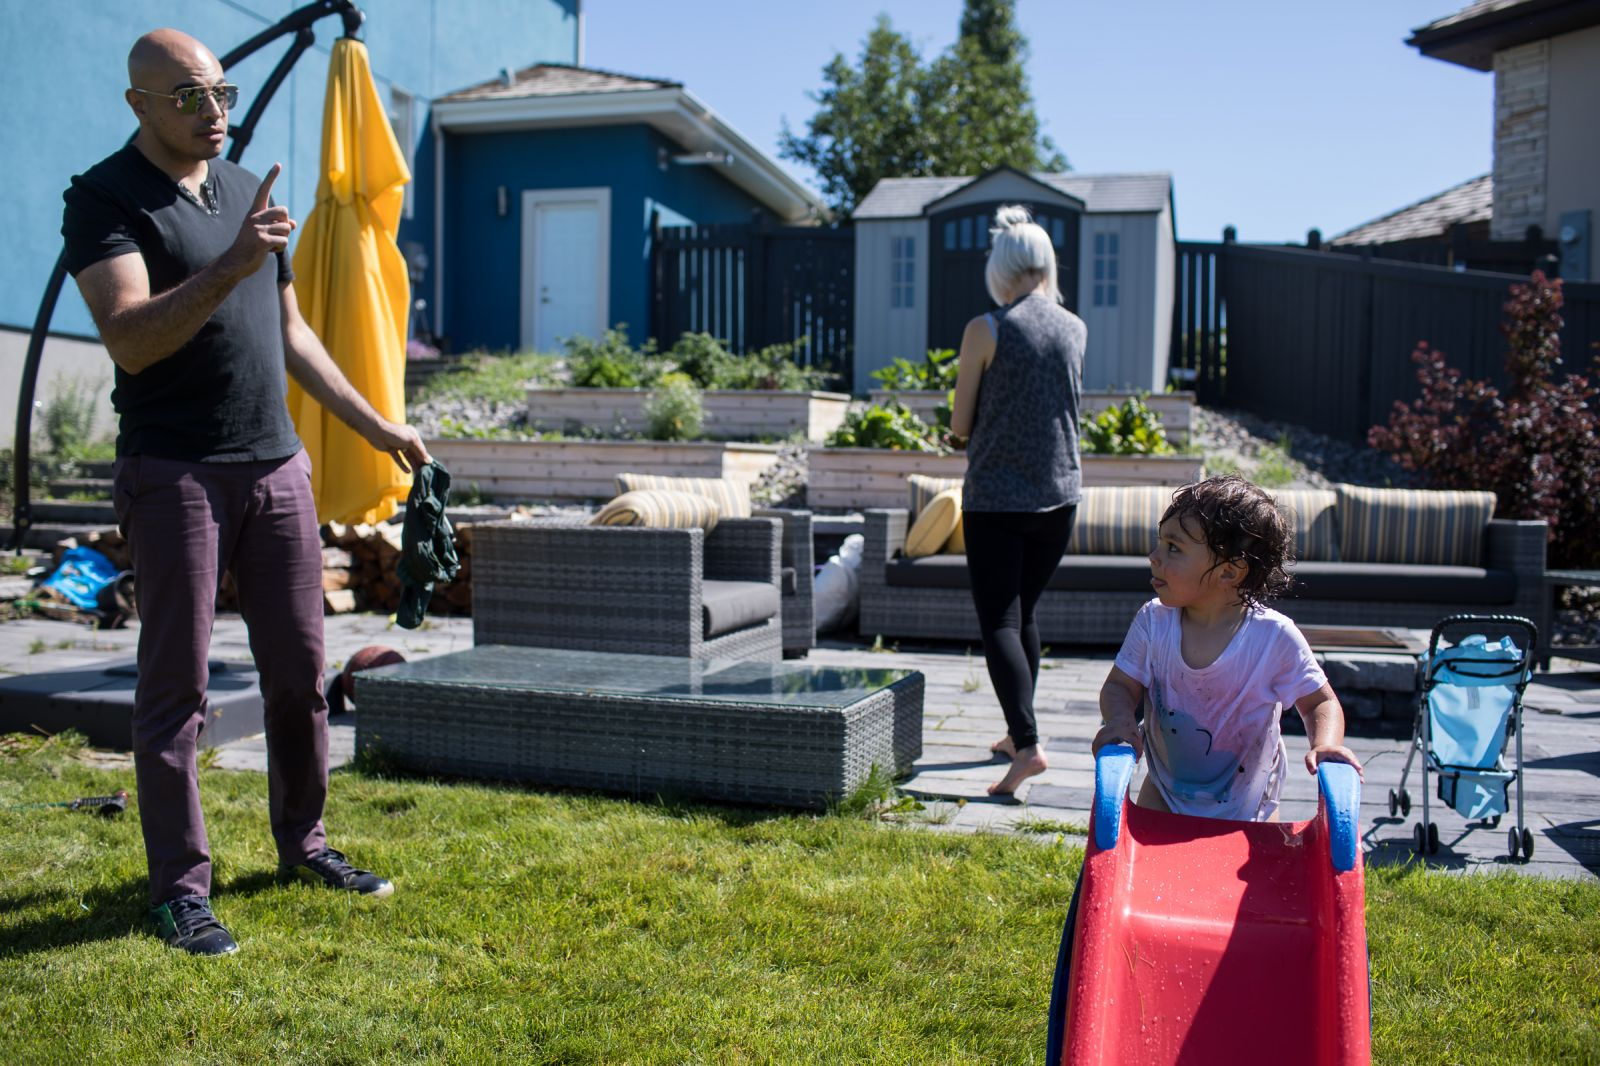 best Edmonton family photographer creates documentary photo of dad parenting his toddler in their backyard